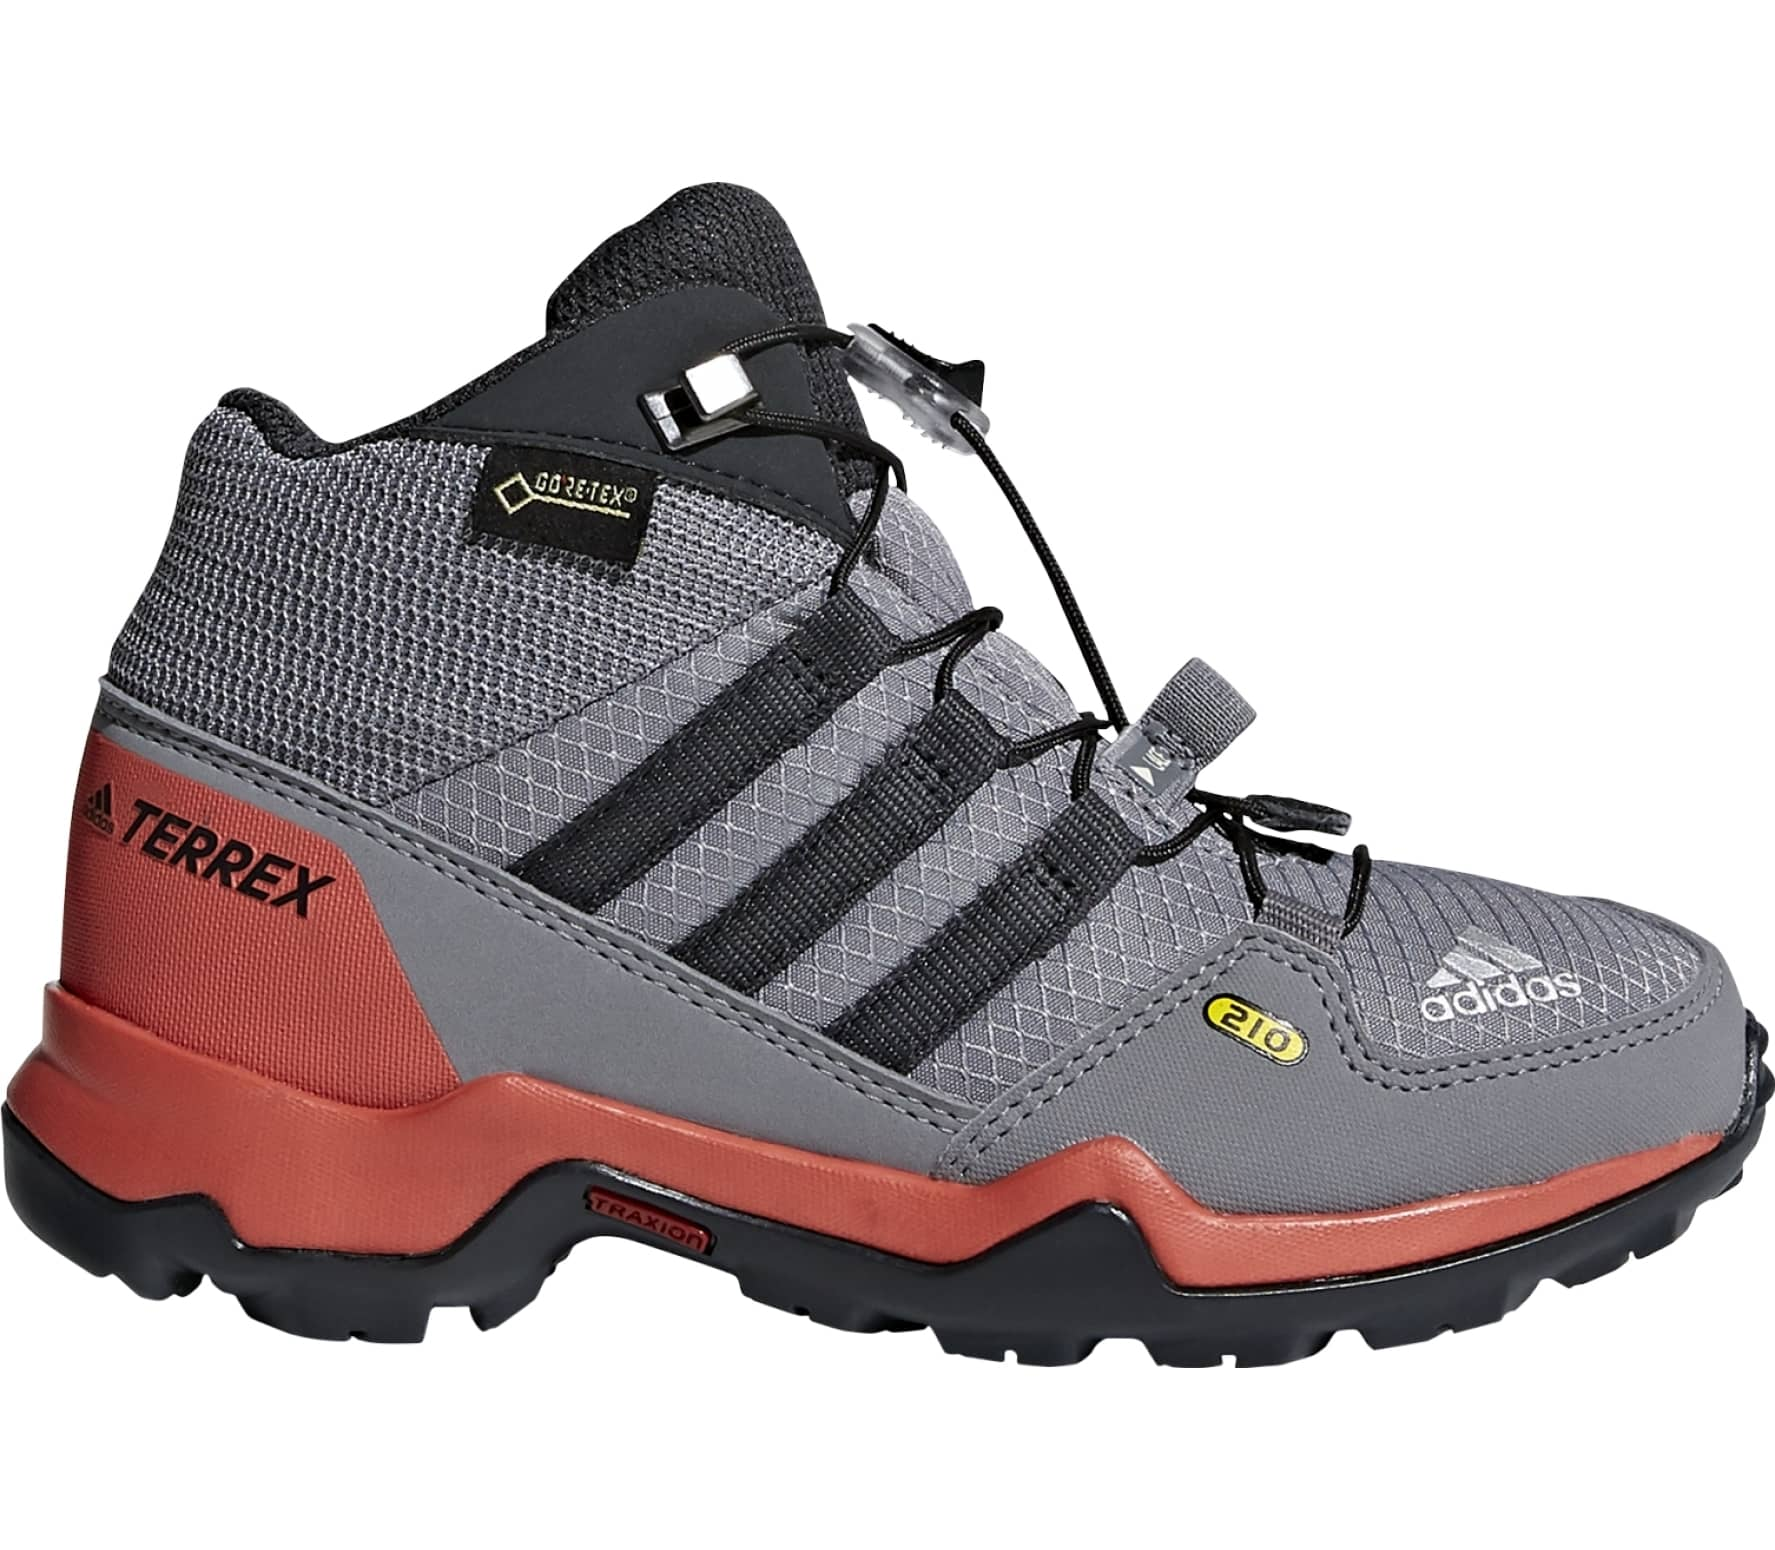 232f136c60a6d Adidas - Terrex Mid Gtx Children hiking shoes (grey red) - buy it at ...